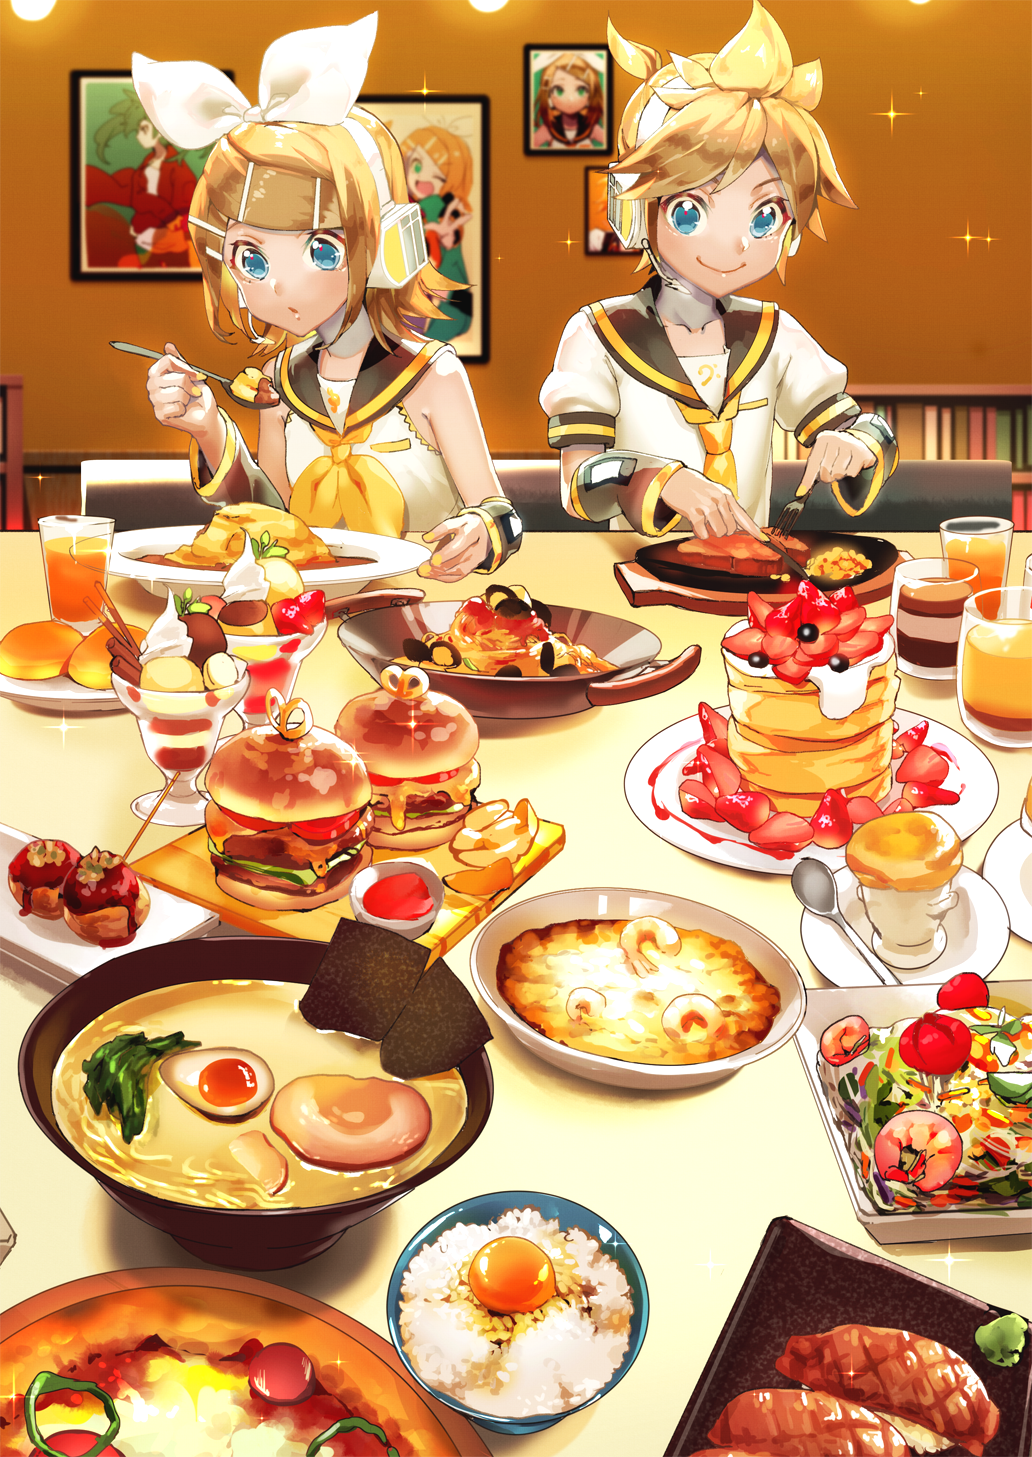 bangs bare_shoulders bass_clef blonde_hair blue_eyes bookshelf bow bowl cake clam commentary cream cup detached_sleeves drinking_glass eating egg egg_yolk food fork french_fries fruit green_hair hair_bow hair_ornament hairclip hamburger hatsune_miku headphones headset highres holding holding_fork holding_knife holding_spoon ice_cream kagamine_len kagamine_rin knife meat neck_ribbon necktie nigirizushi noodles nori_(seaweed) pasta photo_(object) plate pudding puffy_short_sleeves puffy_sleeves ramen ribbon rice sailor_collar saucer sawashi_(ur-sawasi) short_hair short_sleeves shrimp smile souffle_(food) soup spaghetti sparkle spiky_hair spoon steak strawberry suna_no_wakusei_(vocaloid) sundae sushi takoyaki tomato treble_clef vocaloid wafer_stick wasabi white_bow yellow_neckwear